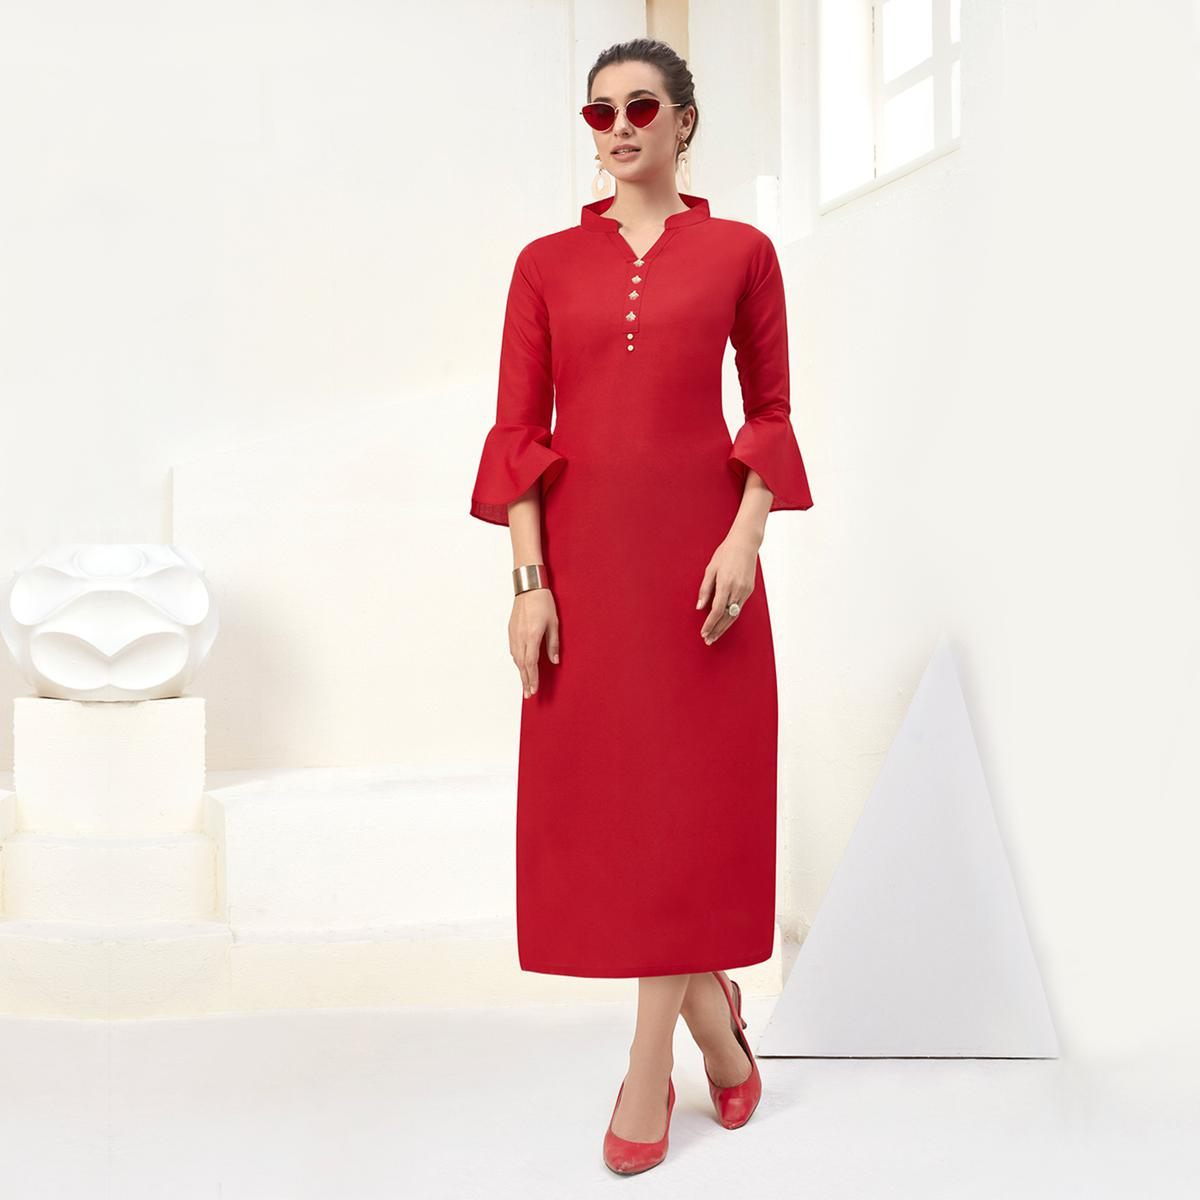 Delightful Red Colored Casual Wear Embroidered Cotton Kurti